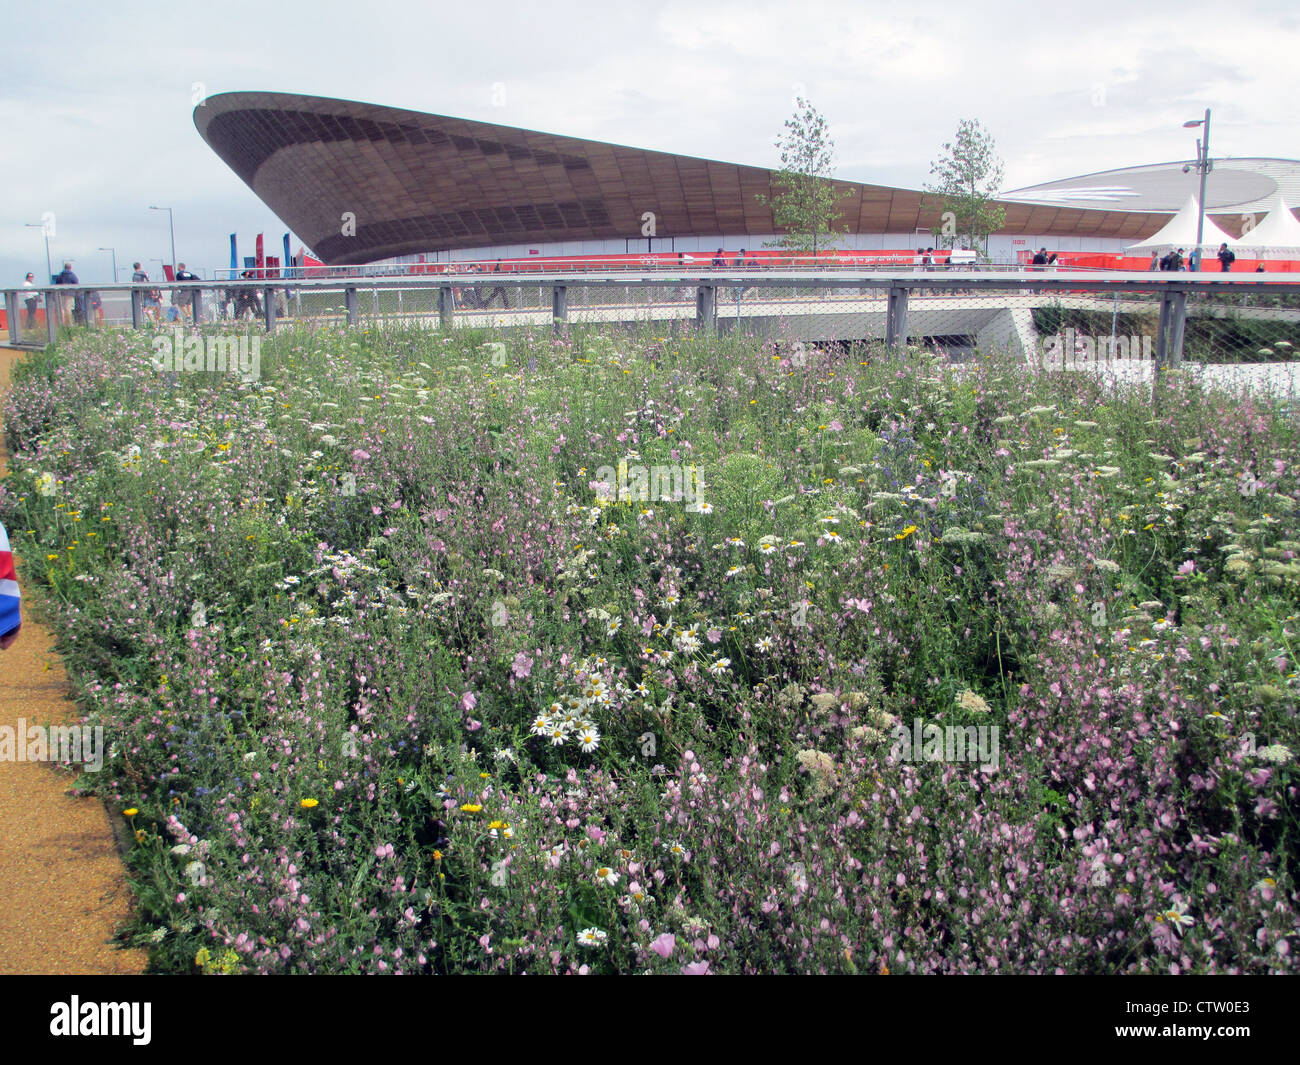 WILD FLOWERS in front of the Velodrome at Olympic Park, Streatham, London in July 2012. Photo Tony Gale - Stock Image